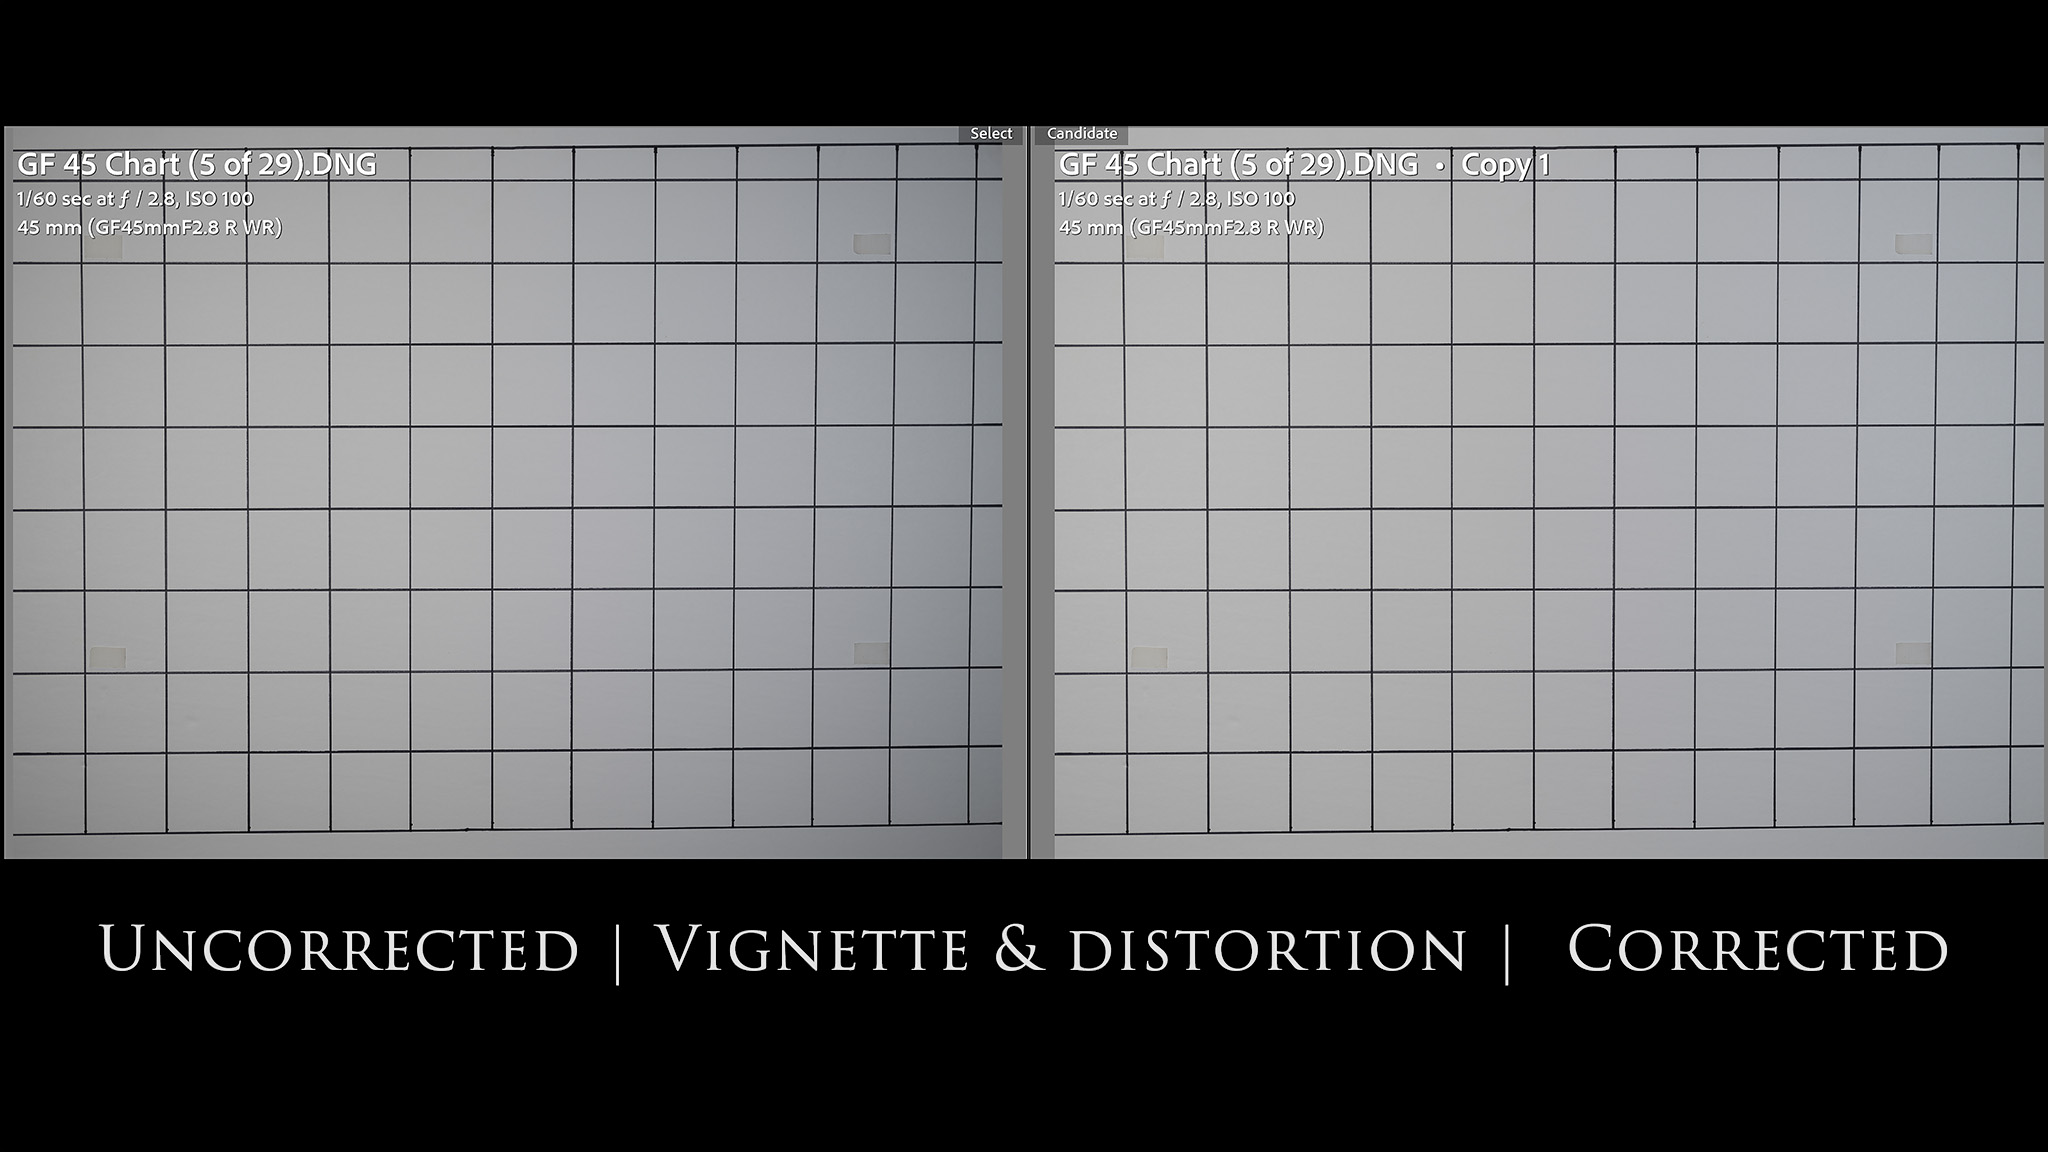 23-Vignette-and-Distortion-Template